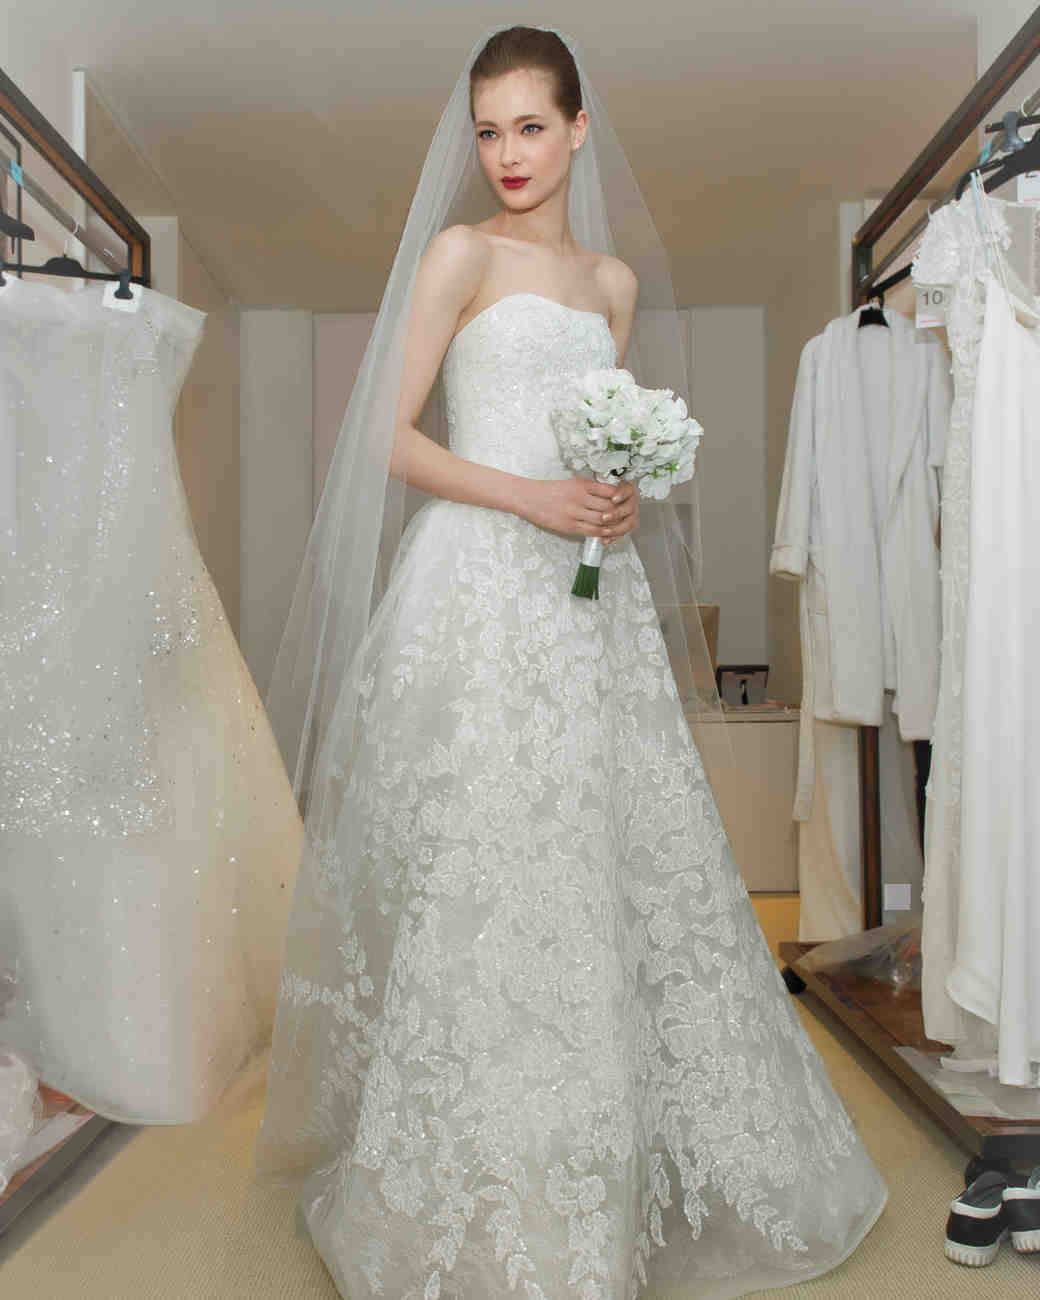 herrera-backstage-bridal-market-mrc-d111212-70-edit-r.jpg